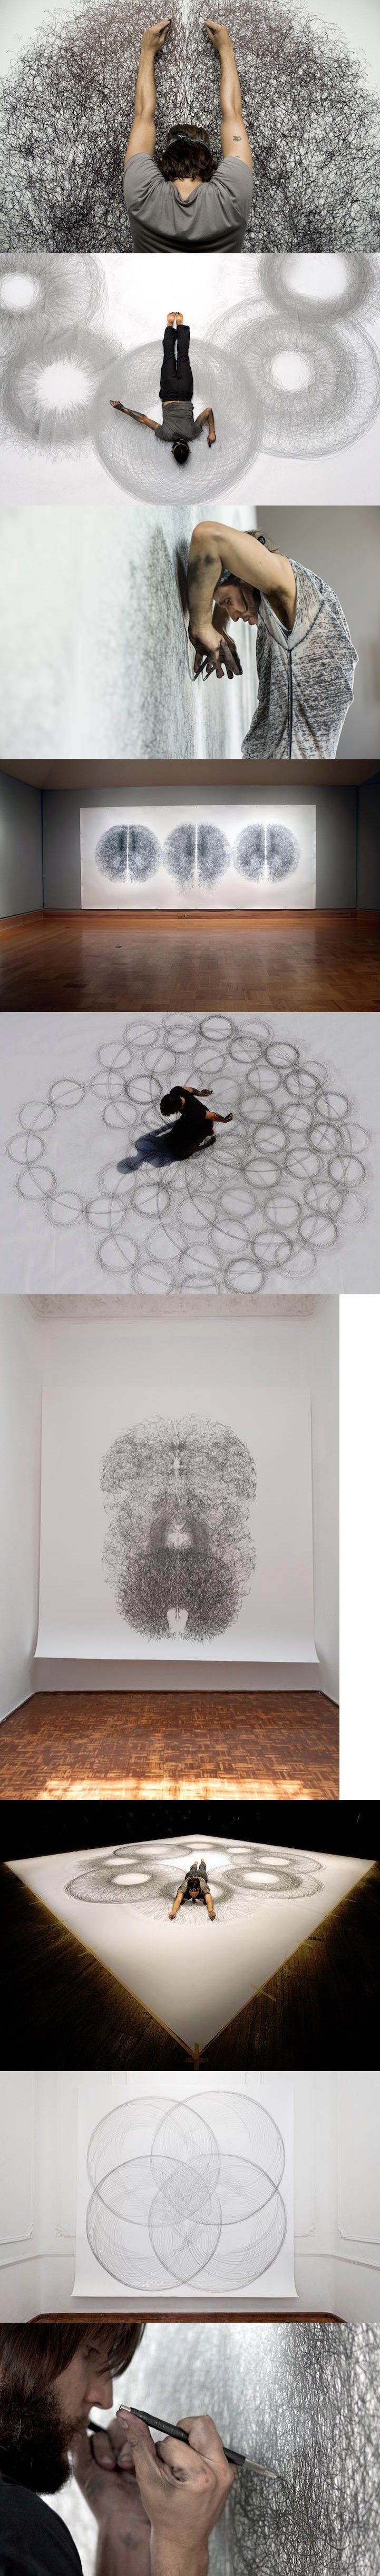 Artist Tony Orrico created the series Penwald Drawings to experiment with his body as a form of measurement